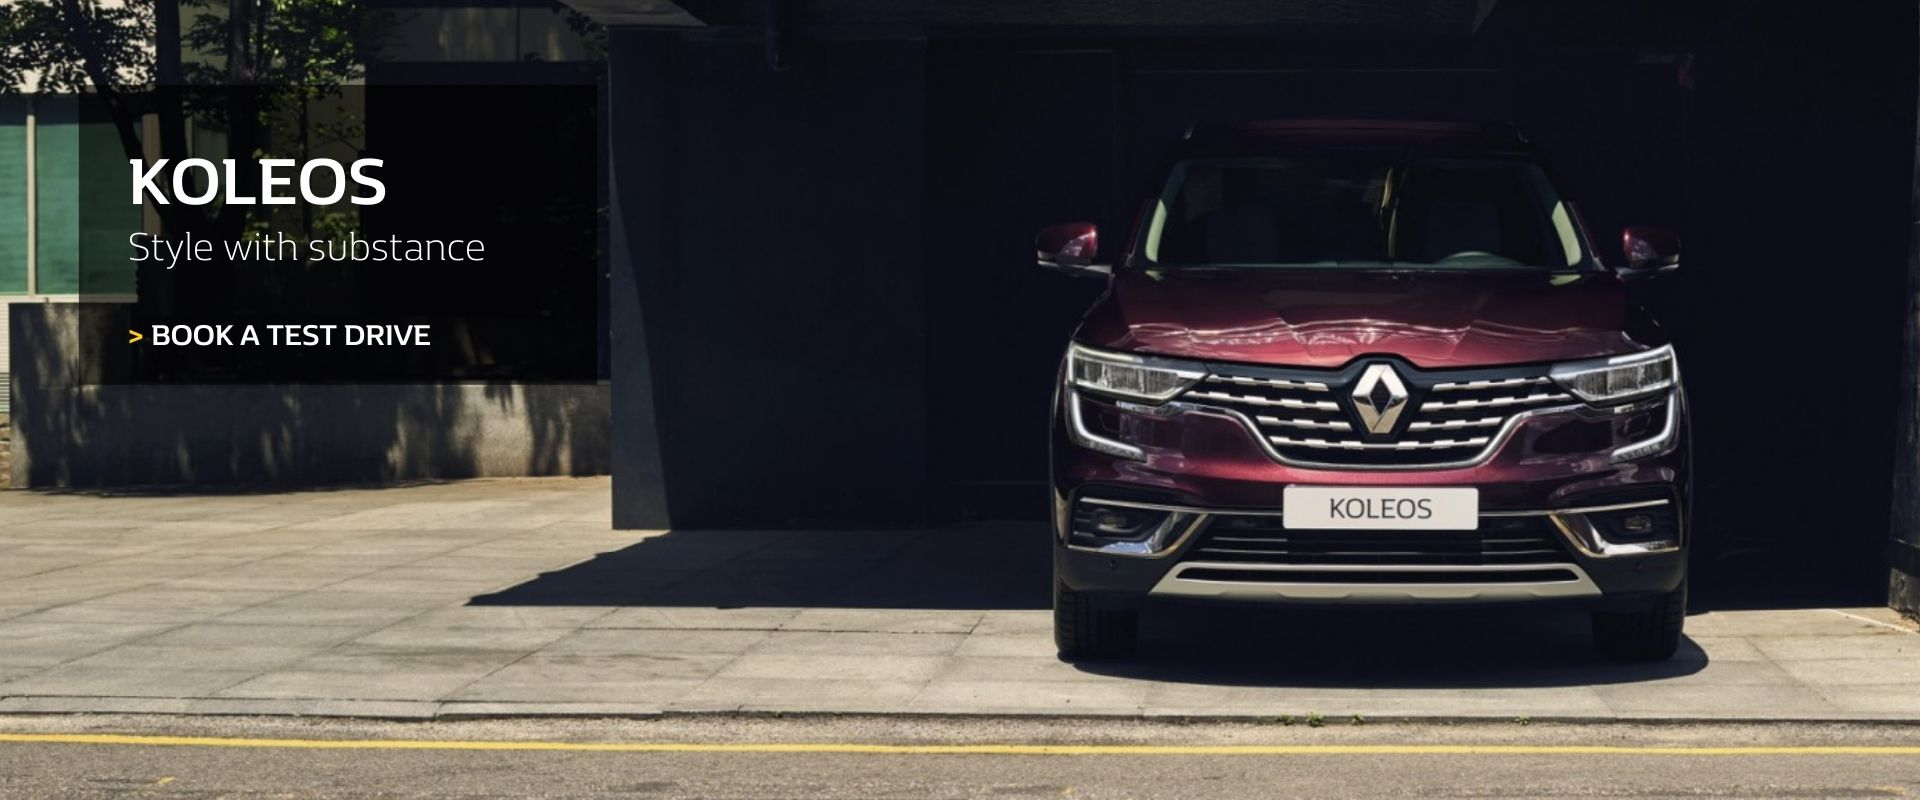 Renault Koleos - Style with substance - Book a test drive today at Tamworth Renault